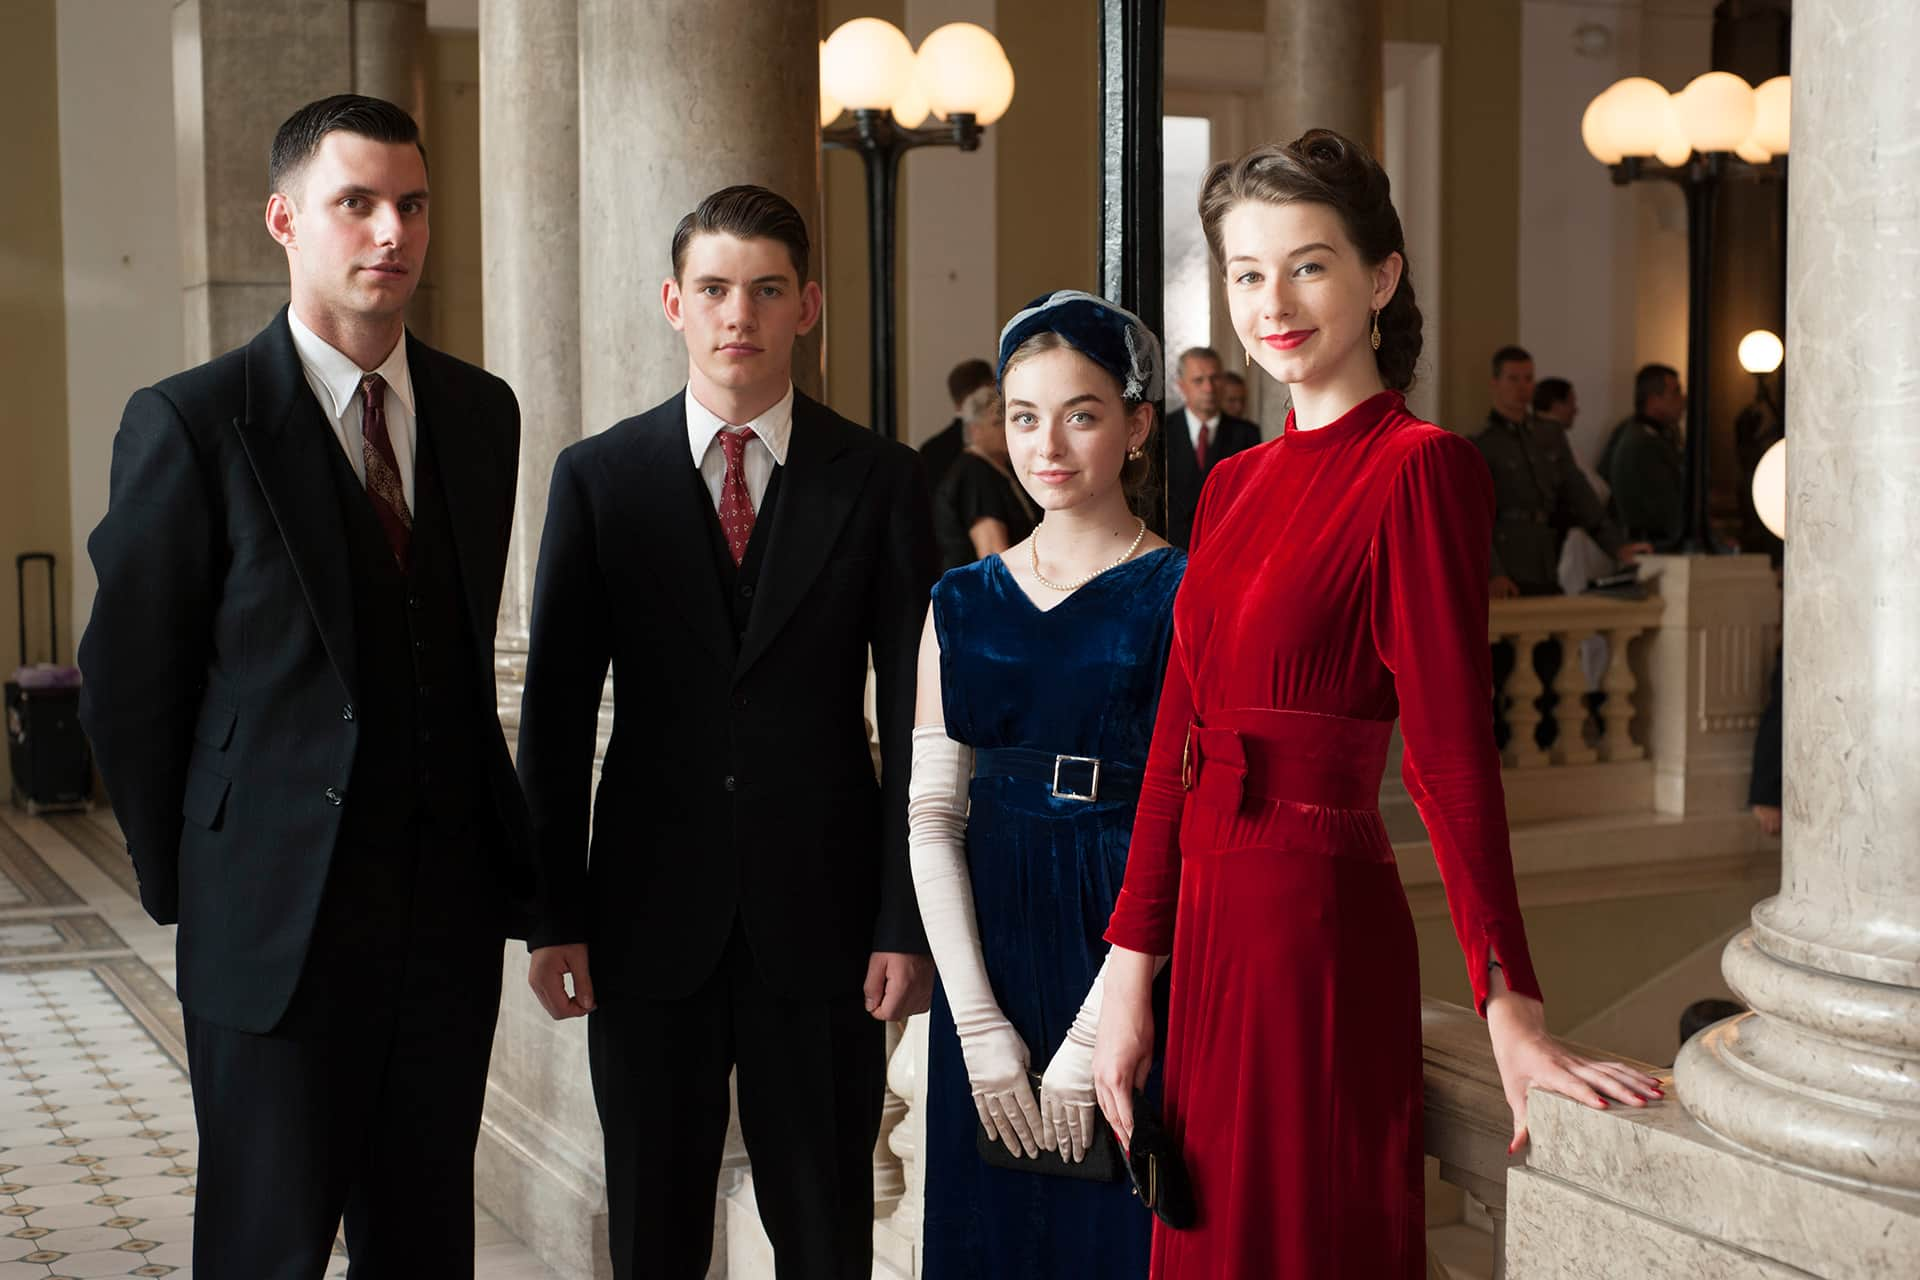 Background performers on the set of X Company Season 3.